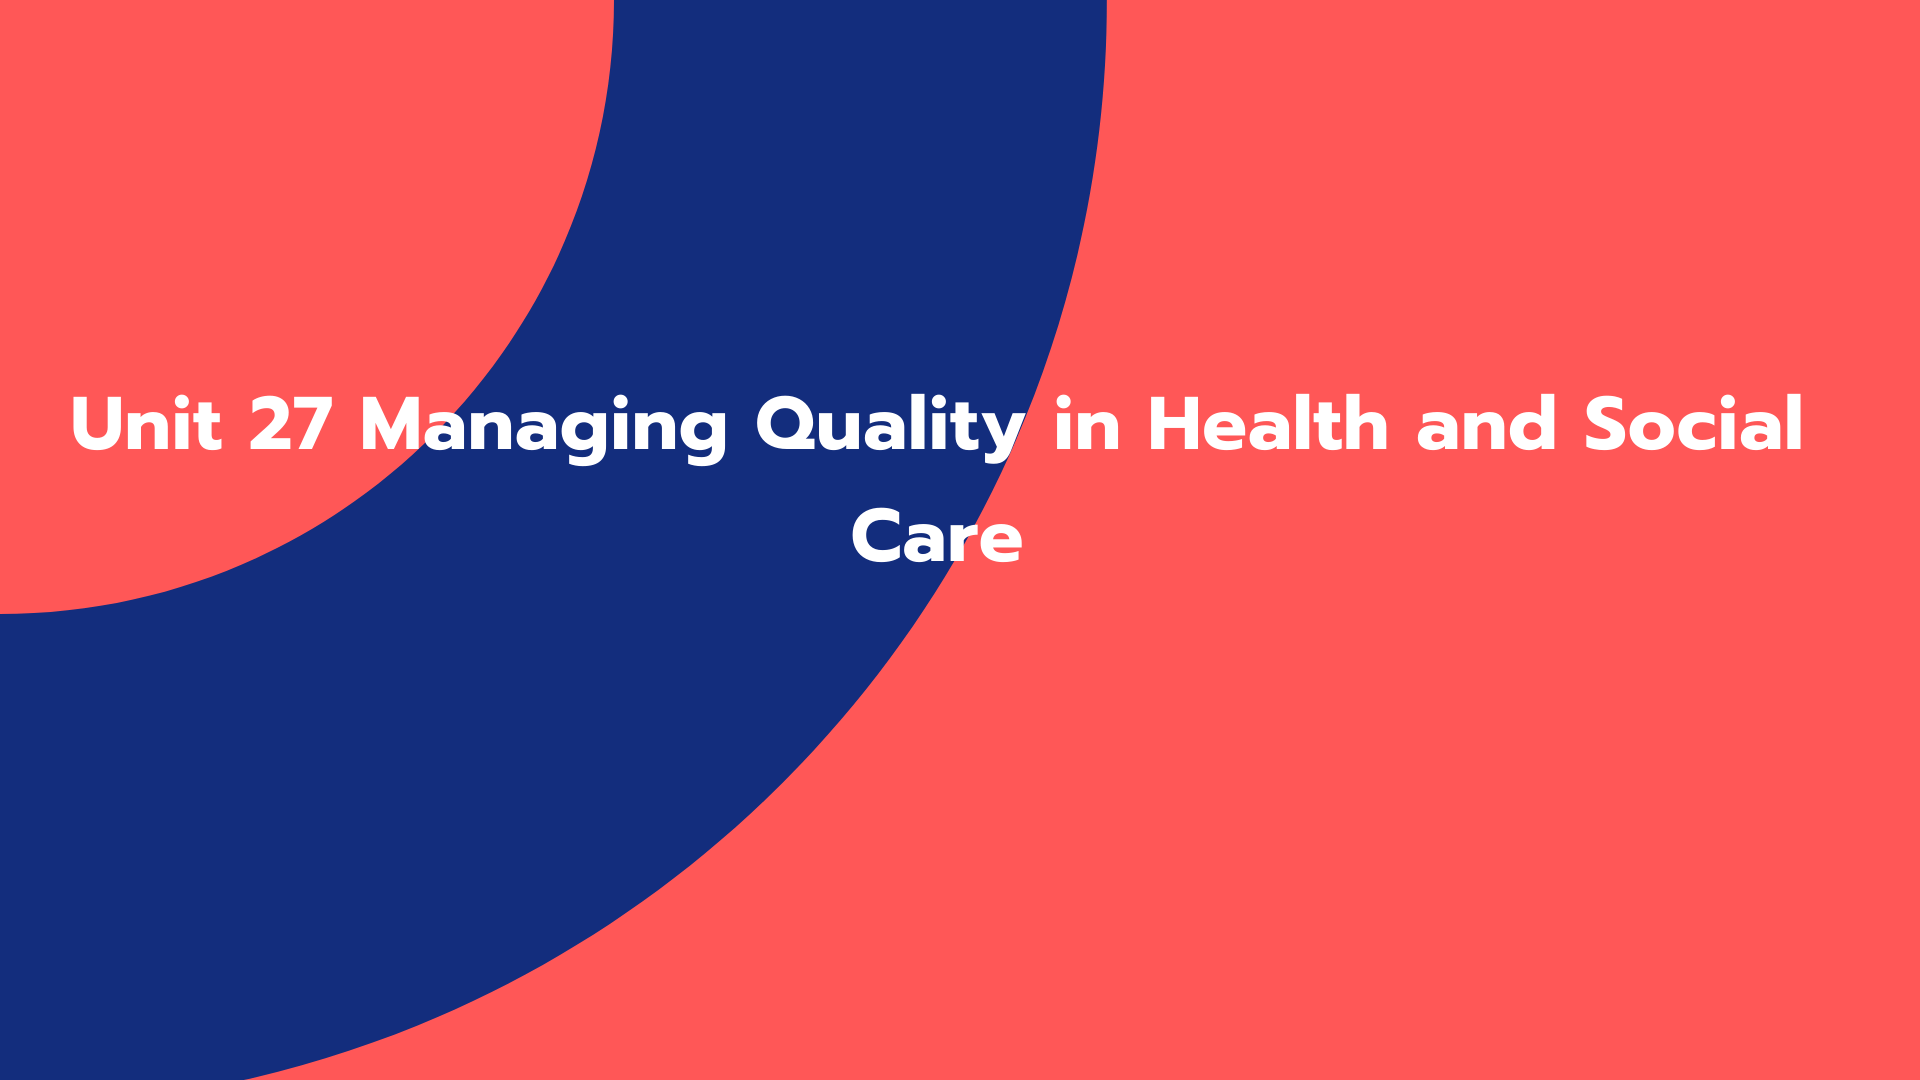 Unit 27 Managing Quality in Health and Social Care